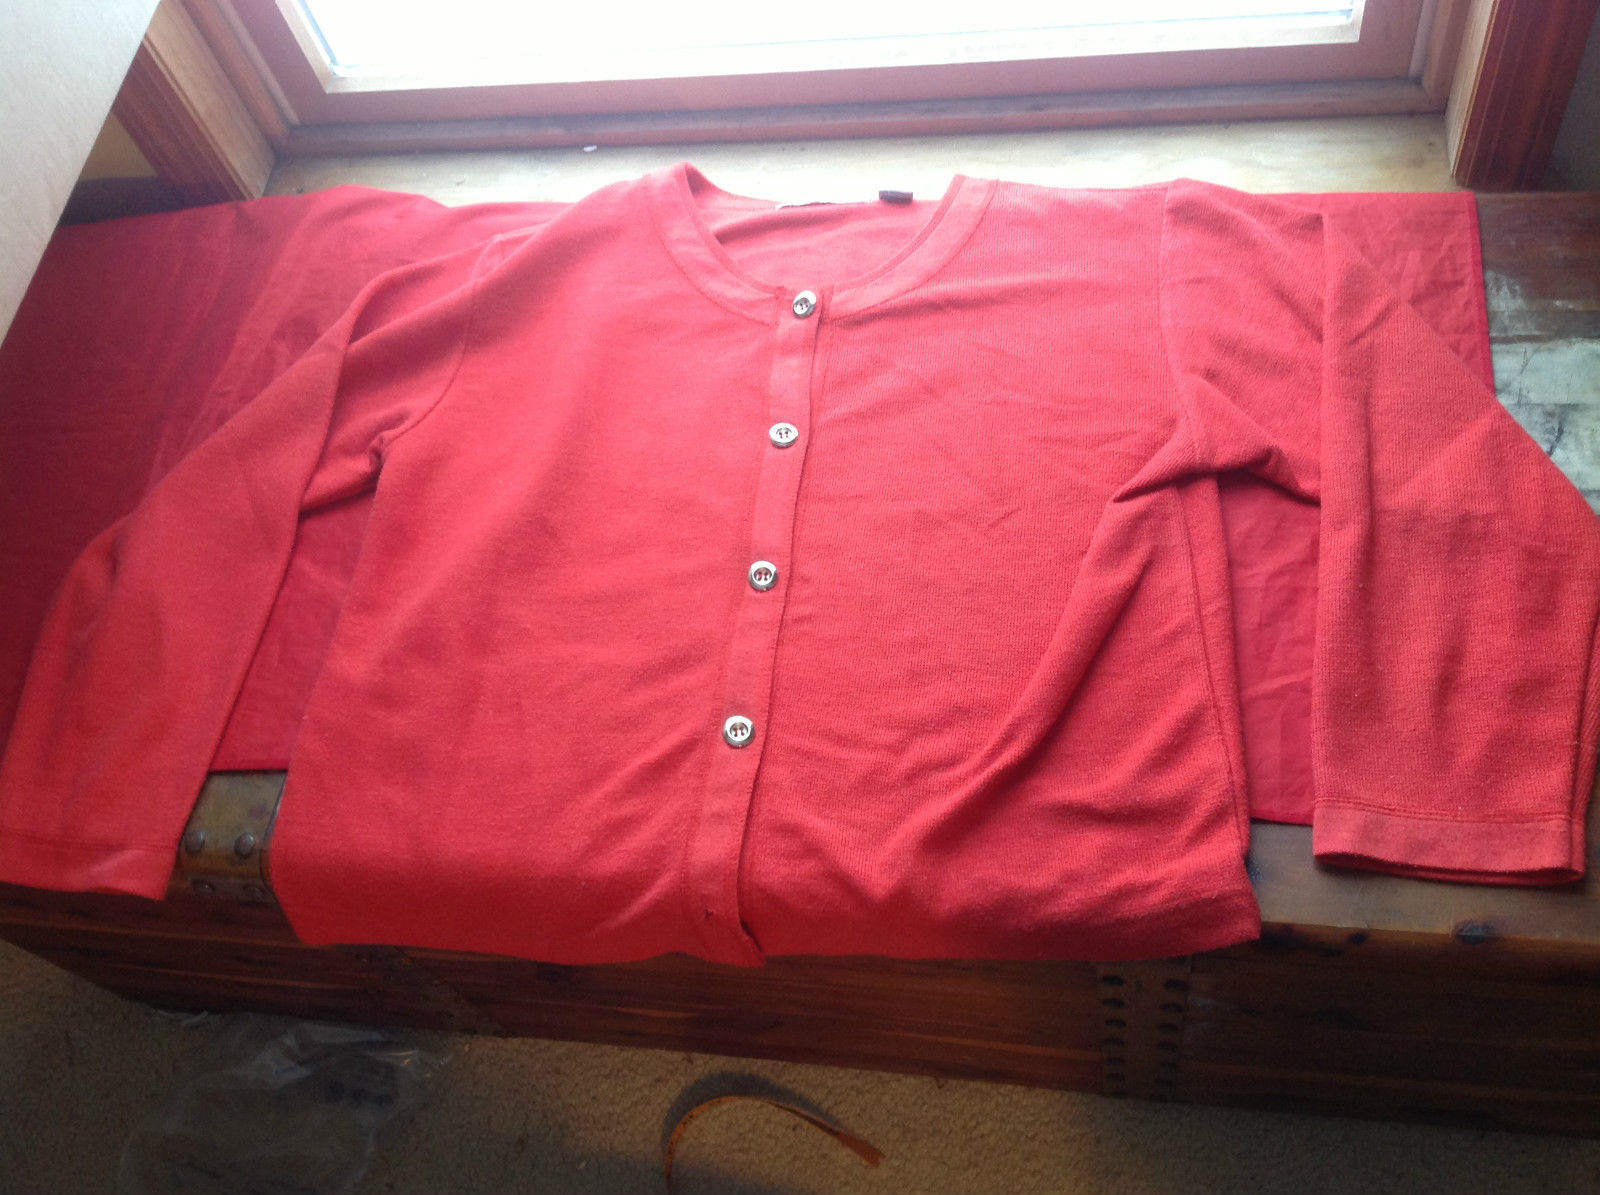 Chinawear Red Long Sleeve Sweater Size L with Matching Long Pants Size L